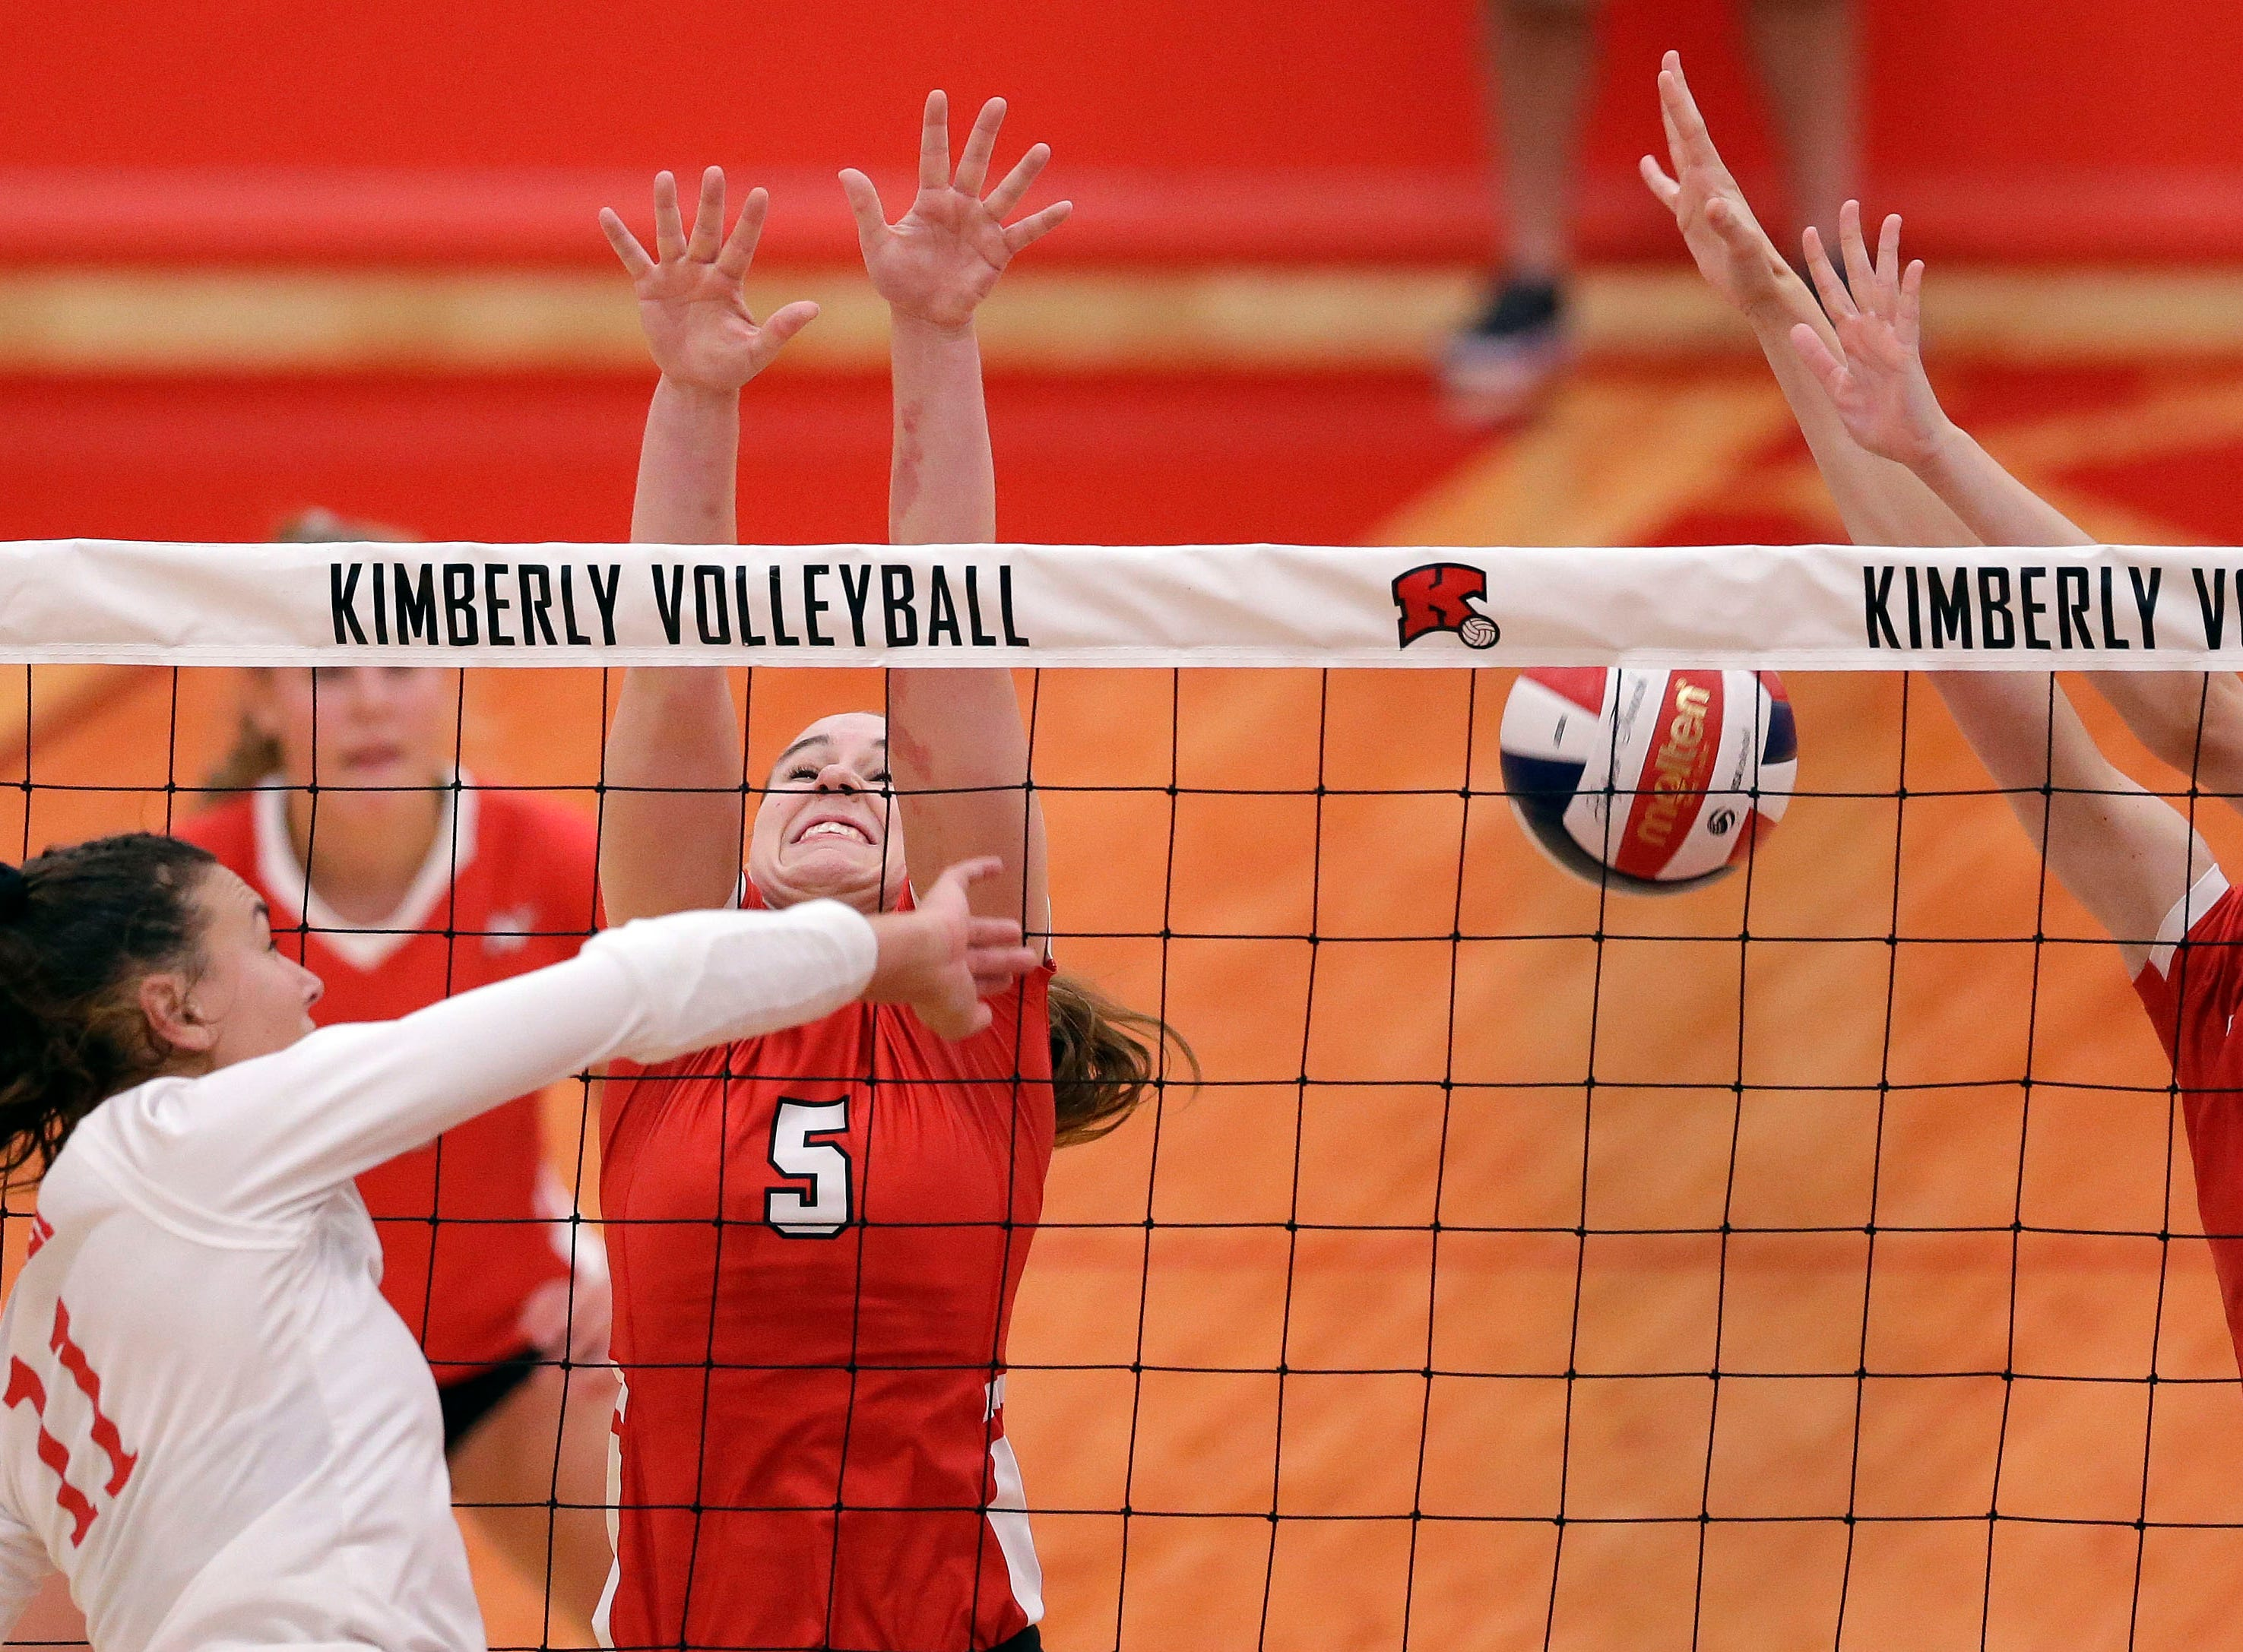 Maggie Cartwright of Kimberly hits between Tommy Albers, left, and Reagan Obry of Neenah in FVA girls volleyball Tuesday, September 11, 2018, at Kimberly High School in Kimberly, Wis.Ron Page/USA TODAY NETWORK-Wisconsin